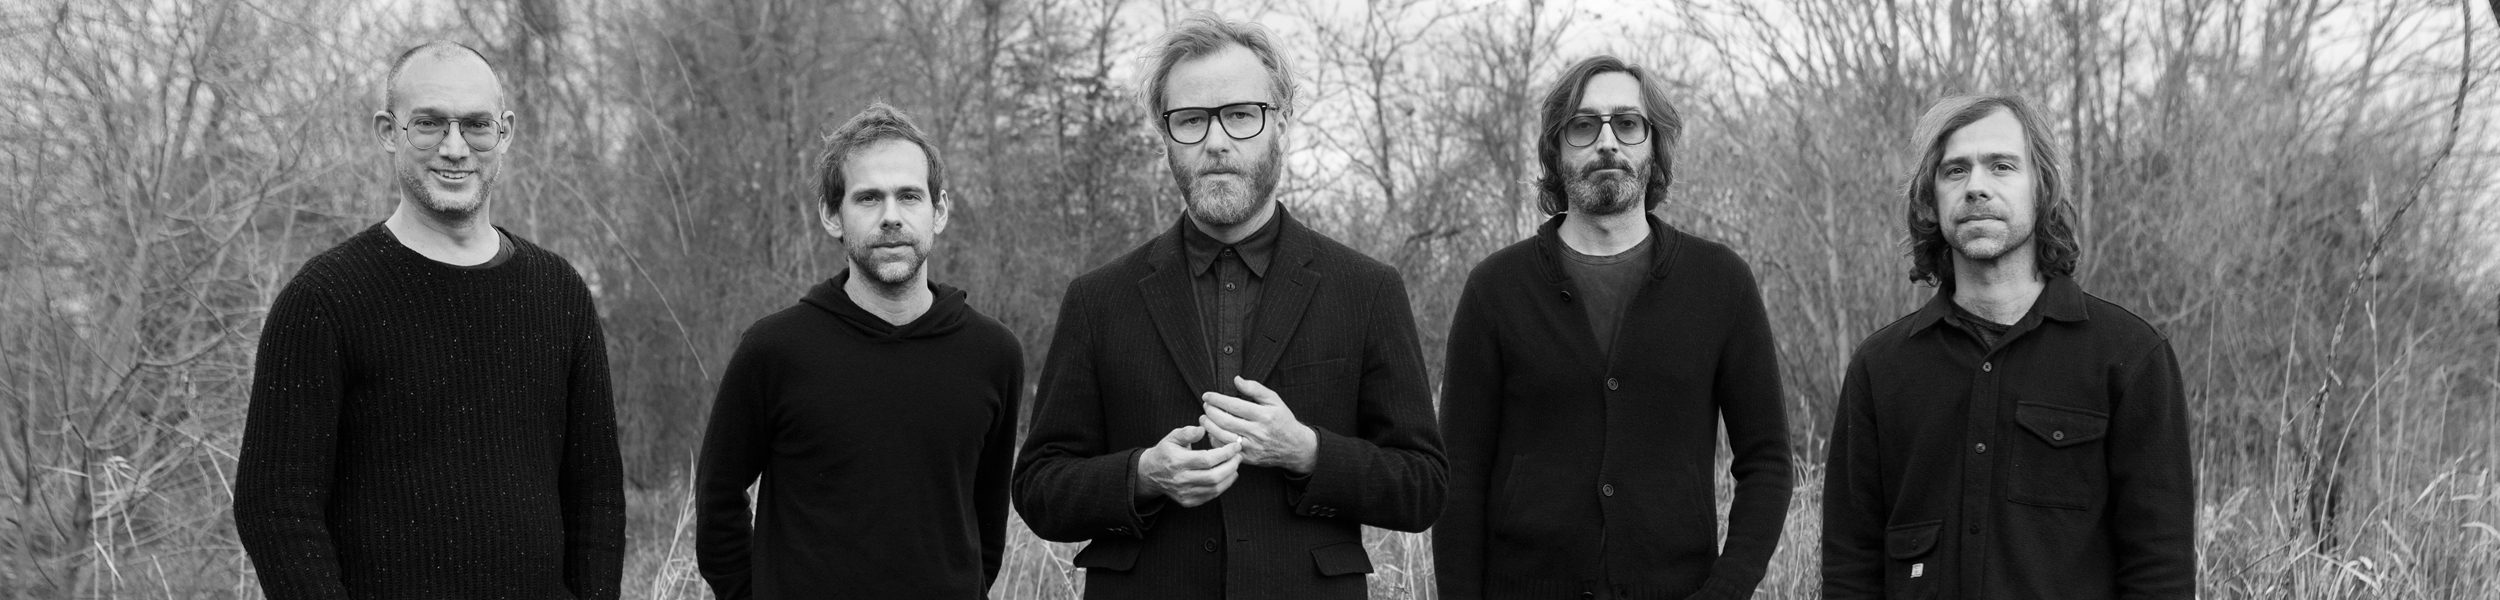 The National - The National Reveal Further Details for High Violet